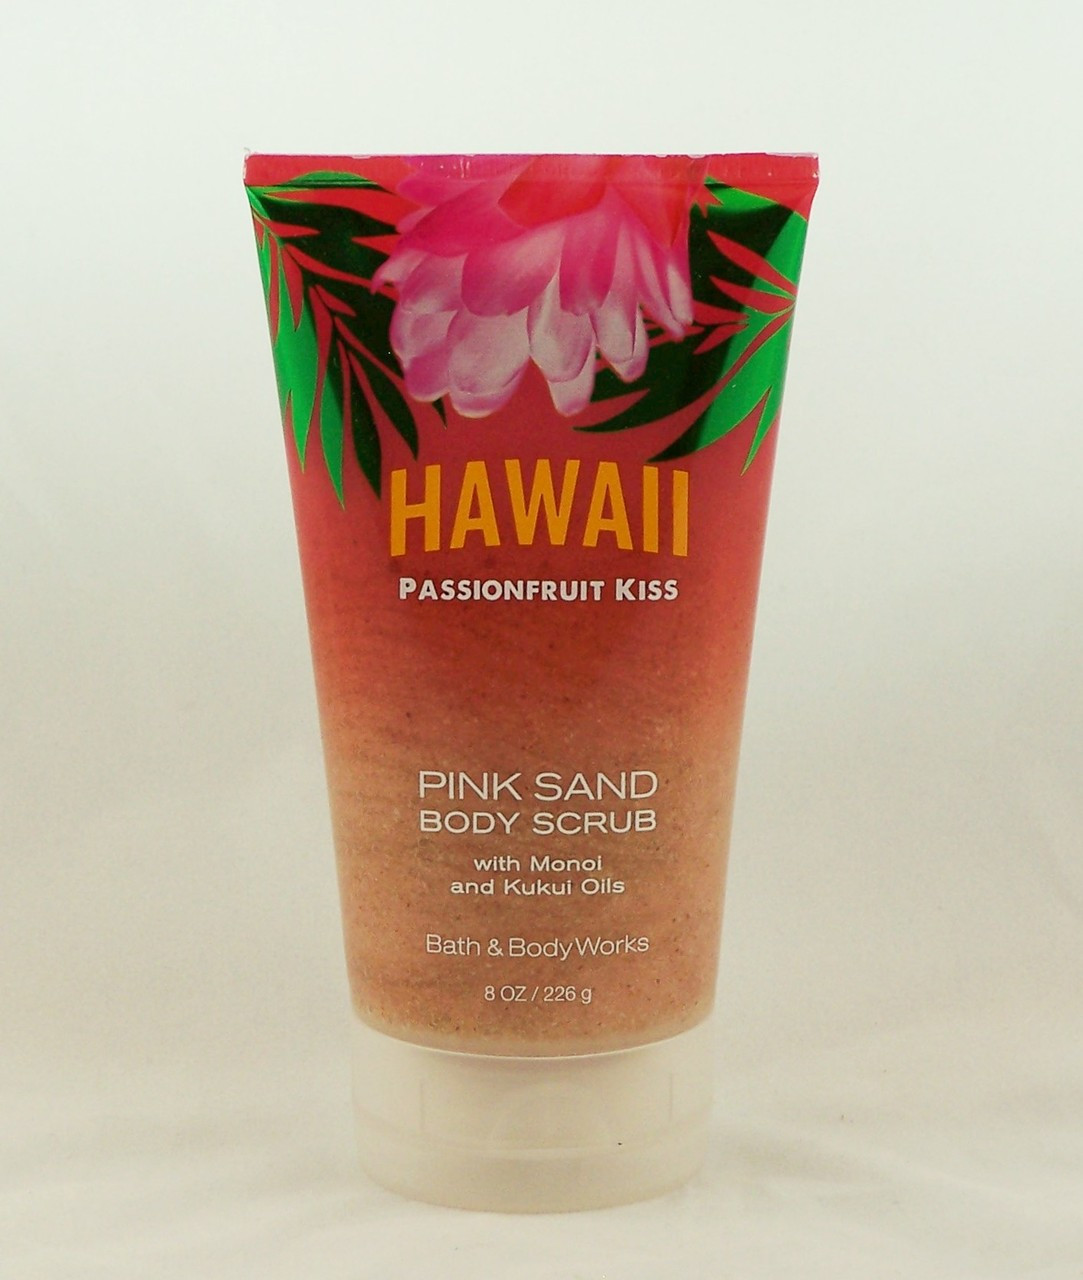 Hawaii Passionfruit Kiss Pink Sand Body Scrub Bath And Body Works 8oz